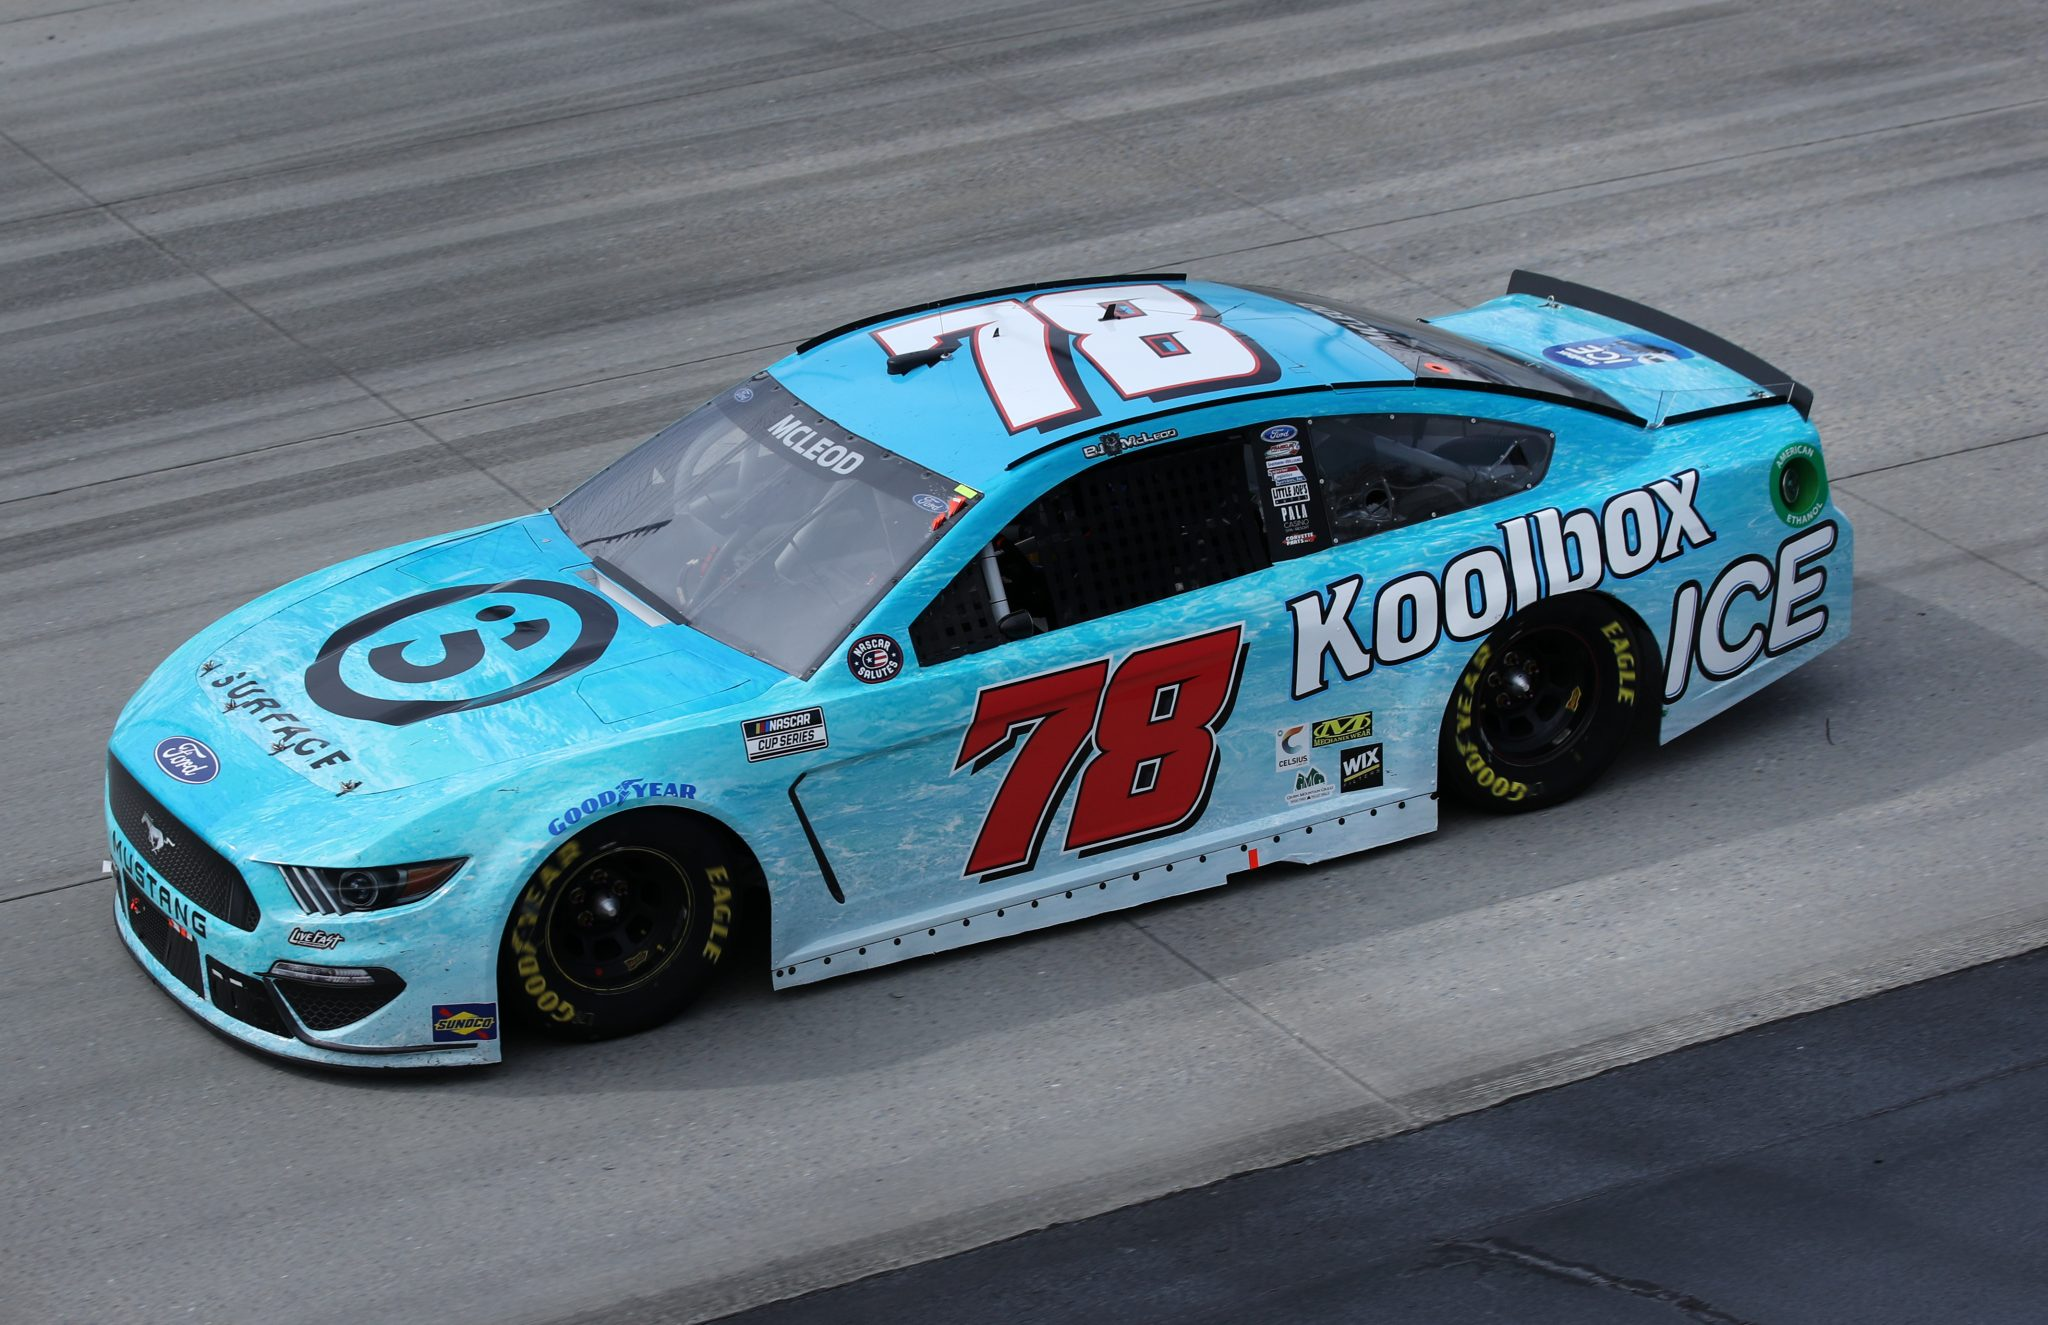 DOVER, DELAWARE - MAY 16: BJ McLeod, driver of the #78 Surface Sunscreen/Koolbox ICE Ford, races during the NASCAR Cup Series Drydene 400 at Dover International Speedway on May 16, 2021 in Dover, Delaware. (Photo by Sean Gardner/Getty Images) | Getty Images